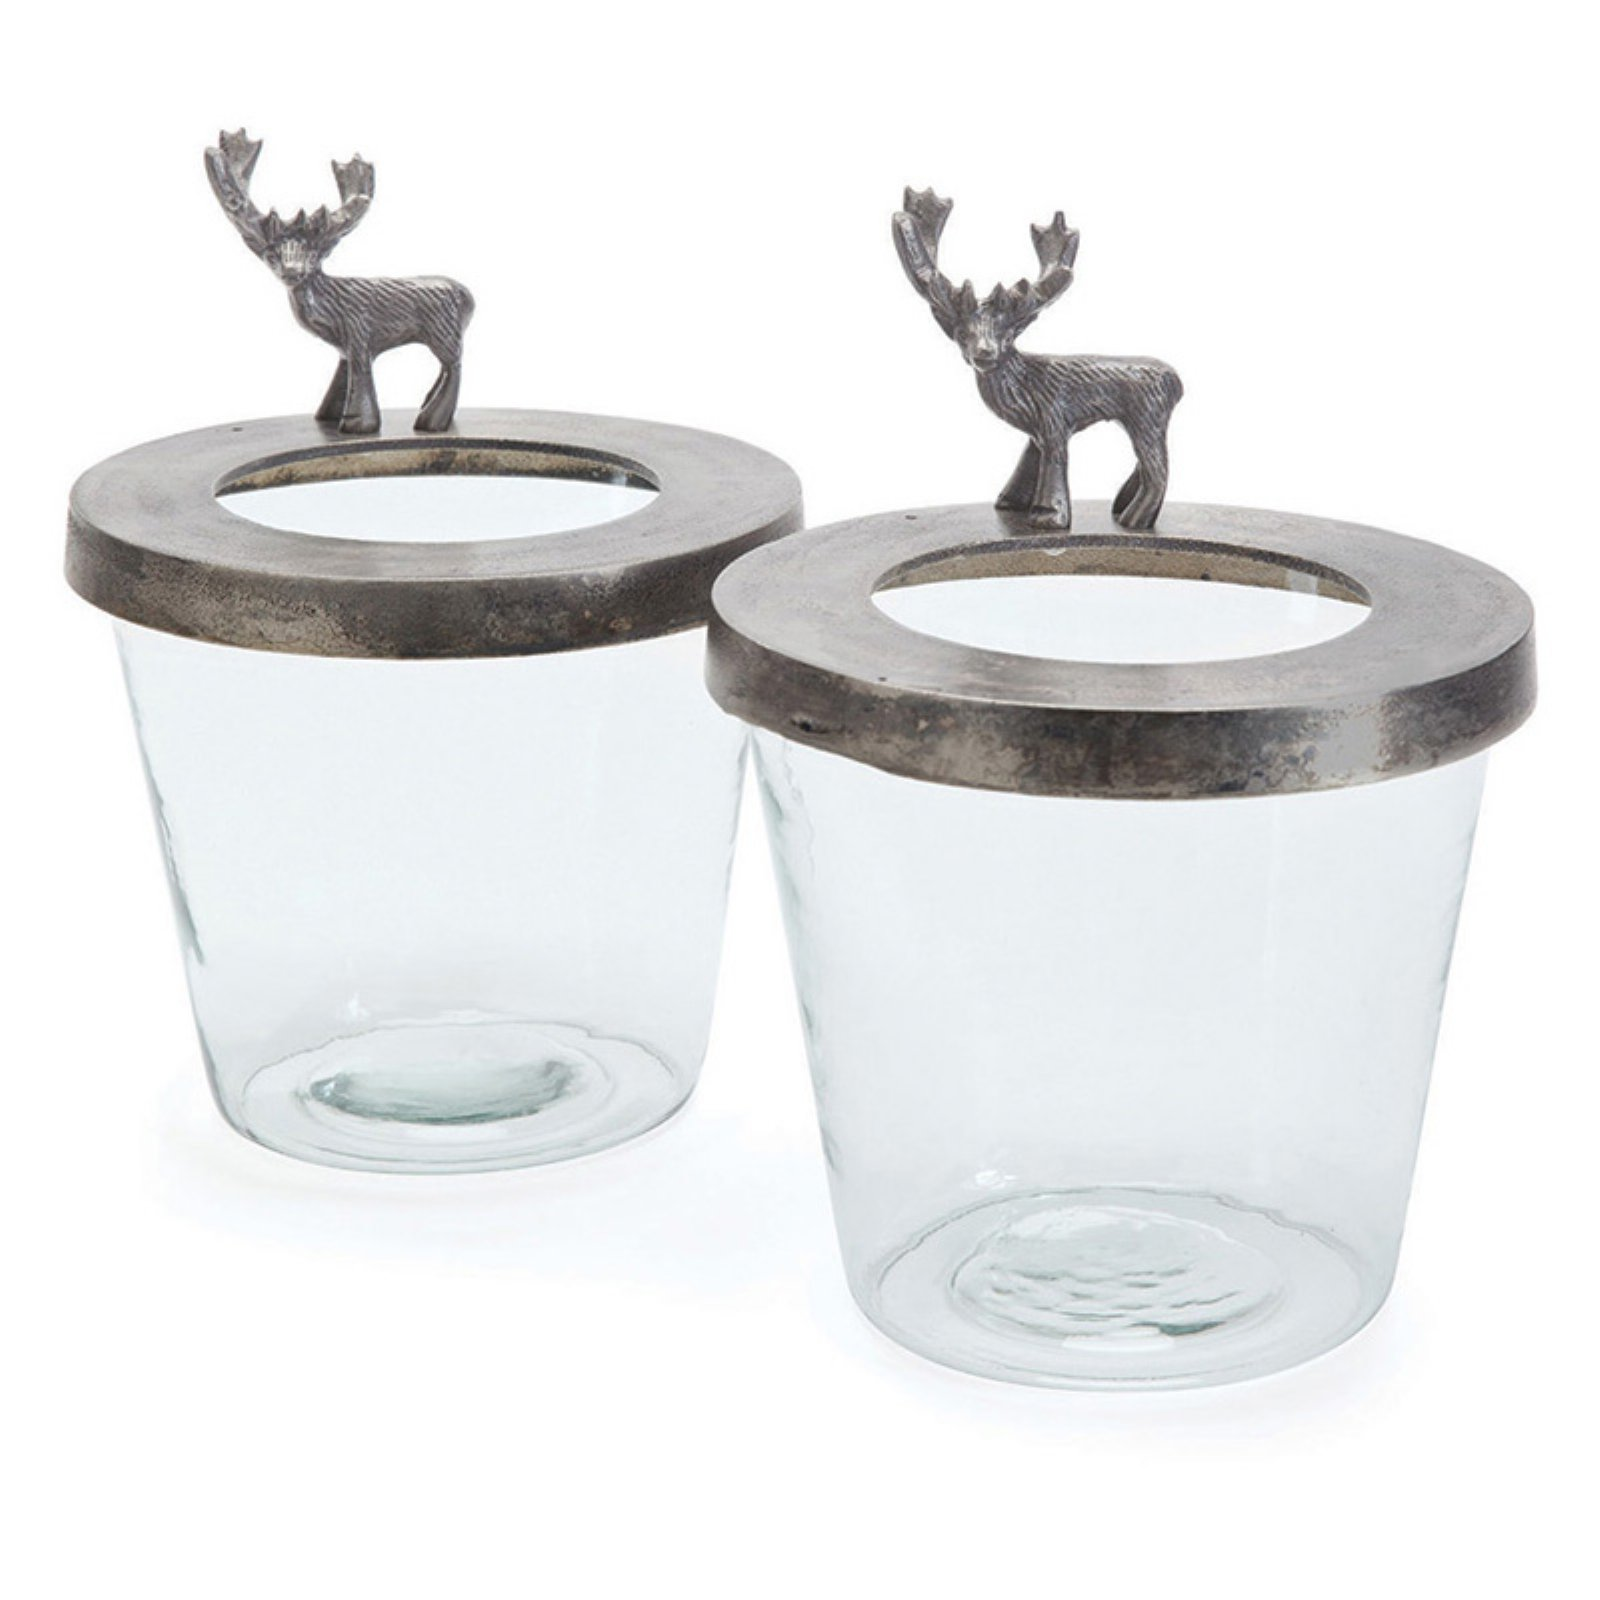 Hip Vintage Calhoun Hurricane Candle Holder - Set of 2